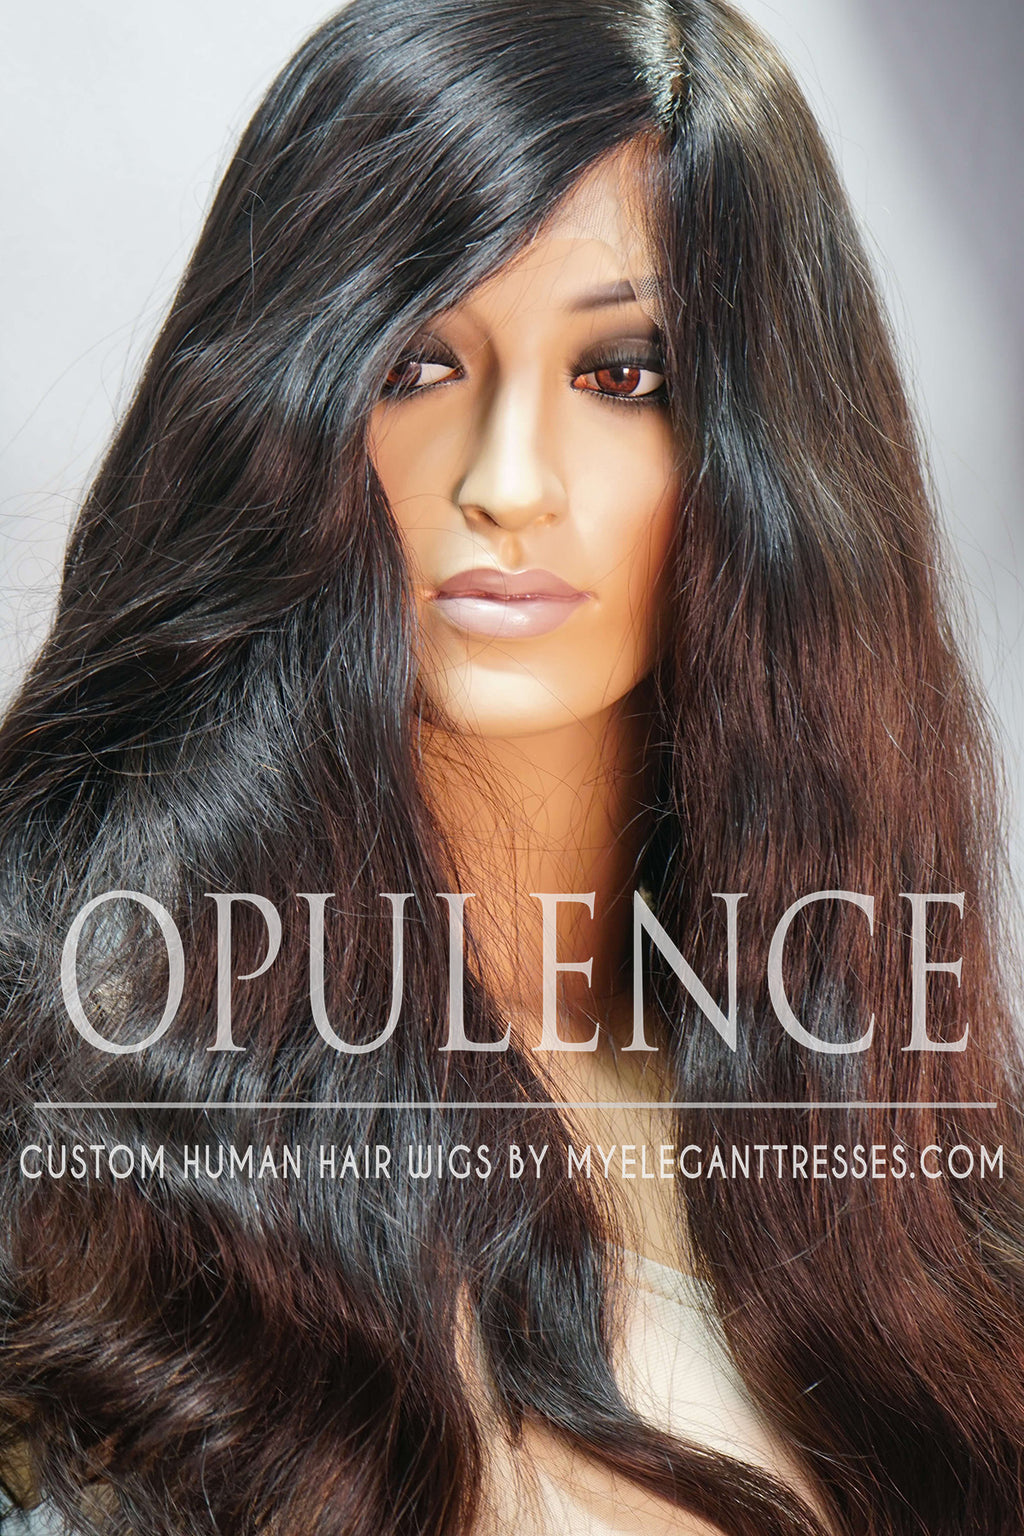 The Racheal Courture Wig - My Elegant Tresses